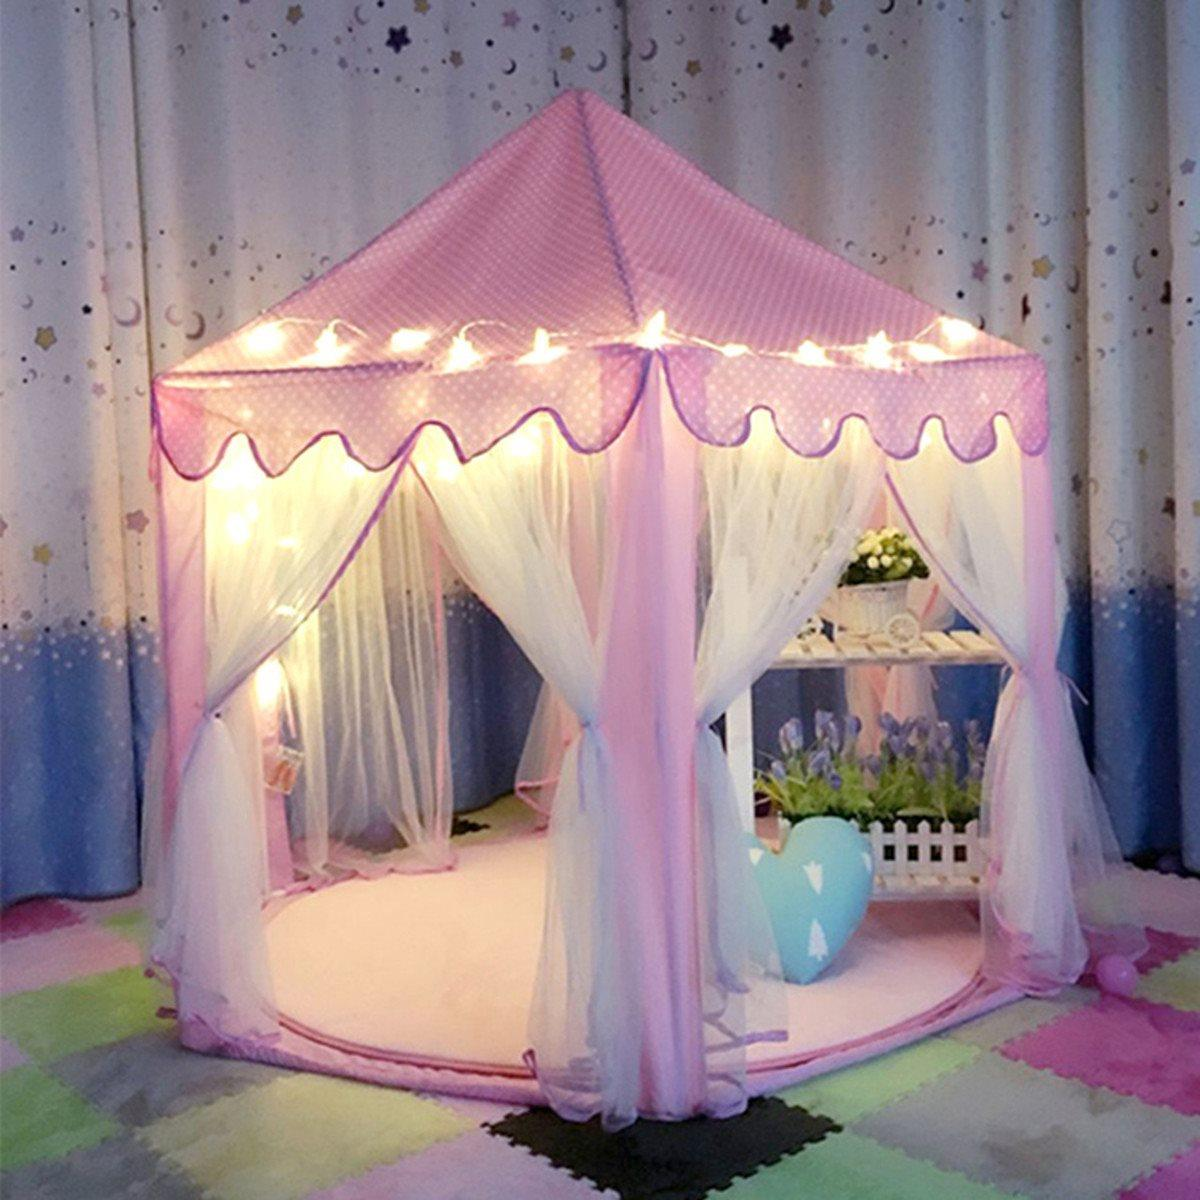 Lovely Girls Pink Princess Castle Cute Playhouse Children Kids Play Tent Outdoor Toys Tent For Children Kids Child Kids Play Tent Kids Play Tent Tent for ... & Lovely Girls Pink Princess Castle Cute Playhouse Children Kids ...